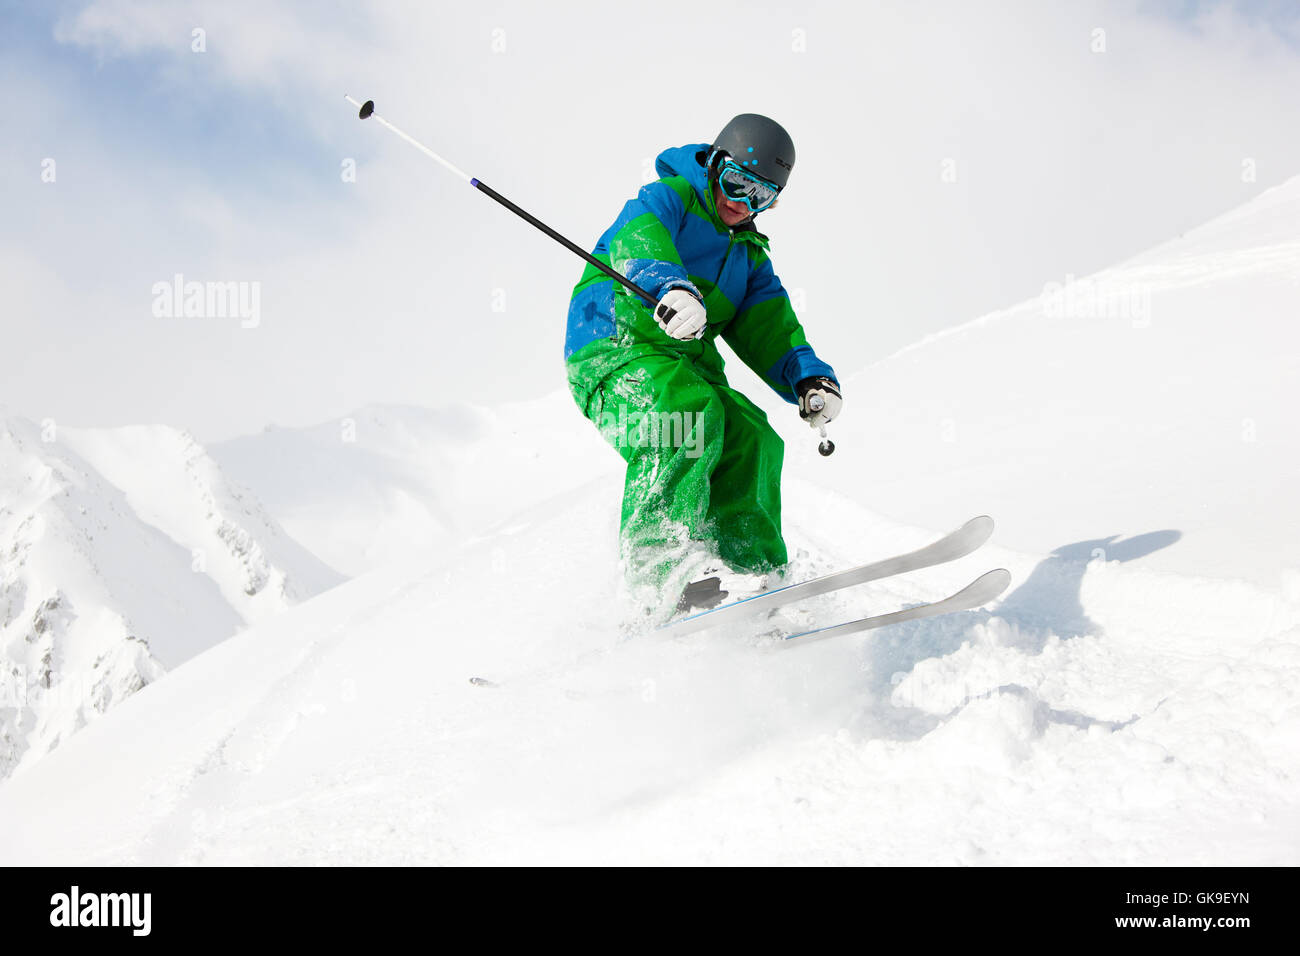 skier on the downhill - Stock Image